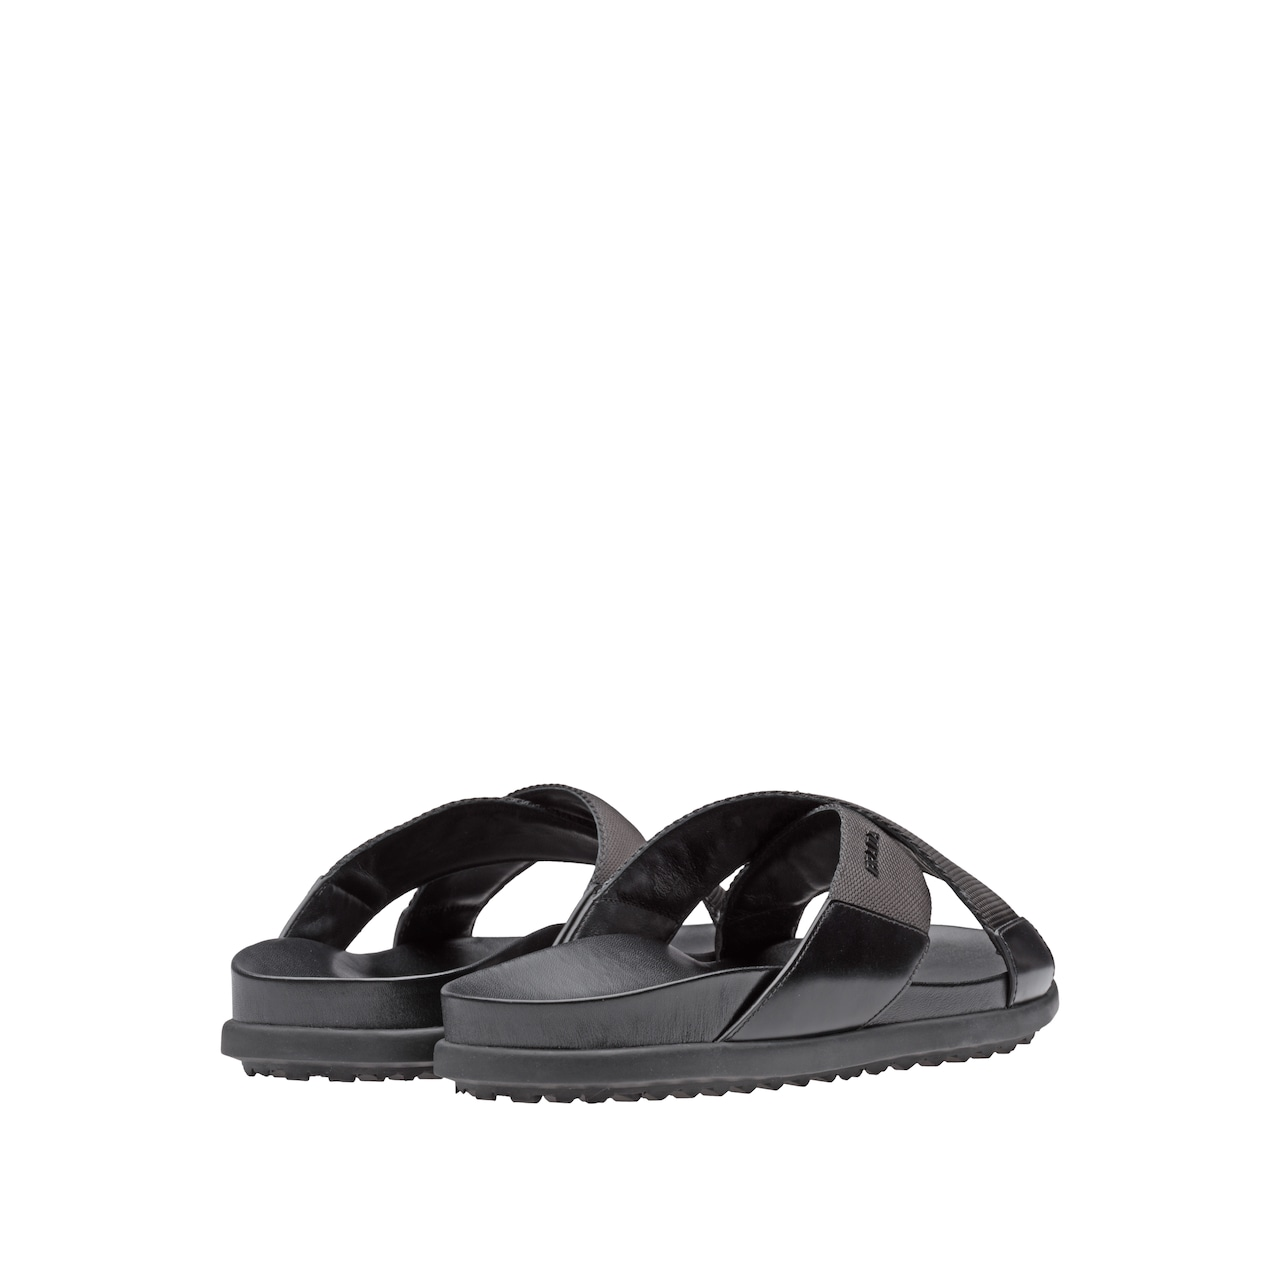 caa0073a068fe7 Next. 1 5. A sophisticated tonal combination of woven nylon bands and  brushed calf leather defines these crisscross sandals ...